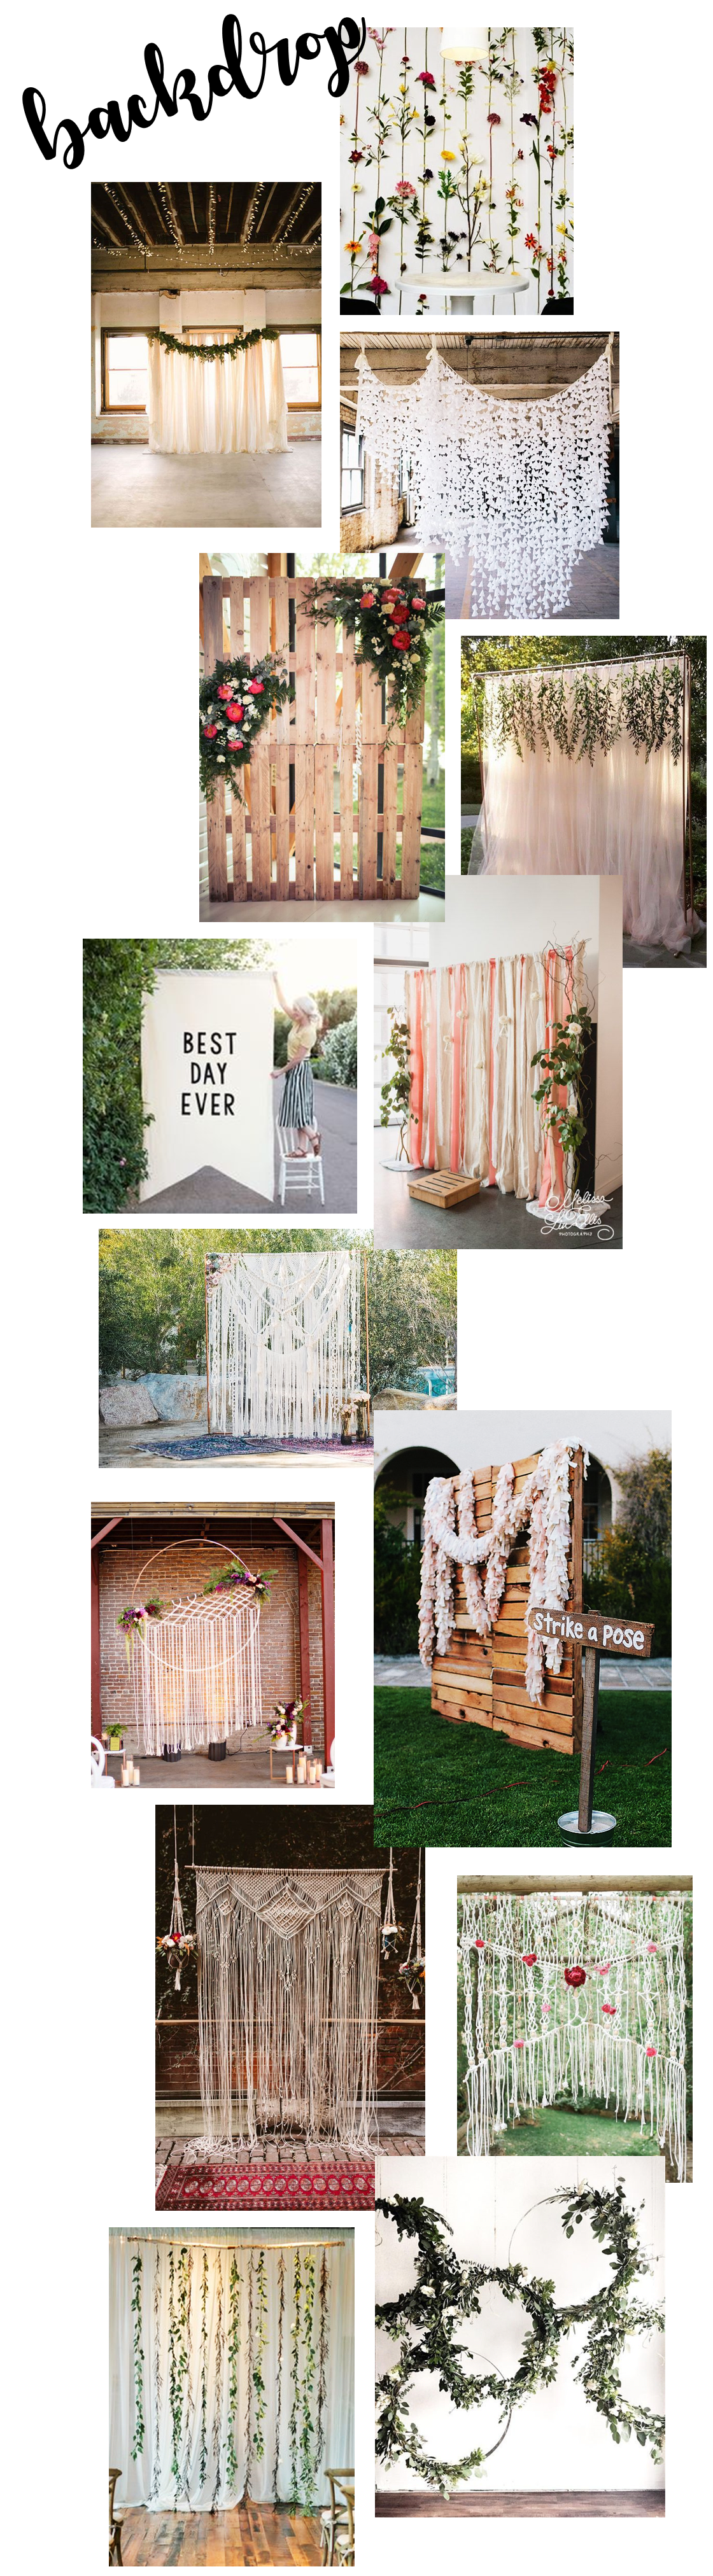 00 WEDDING backdrop